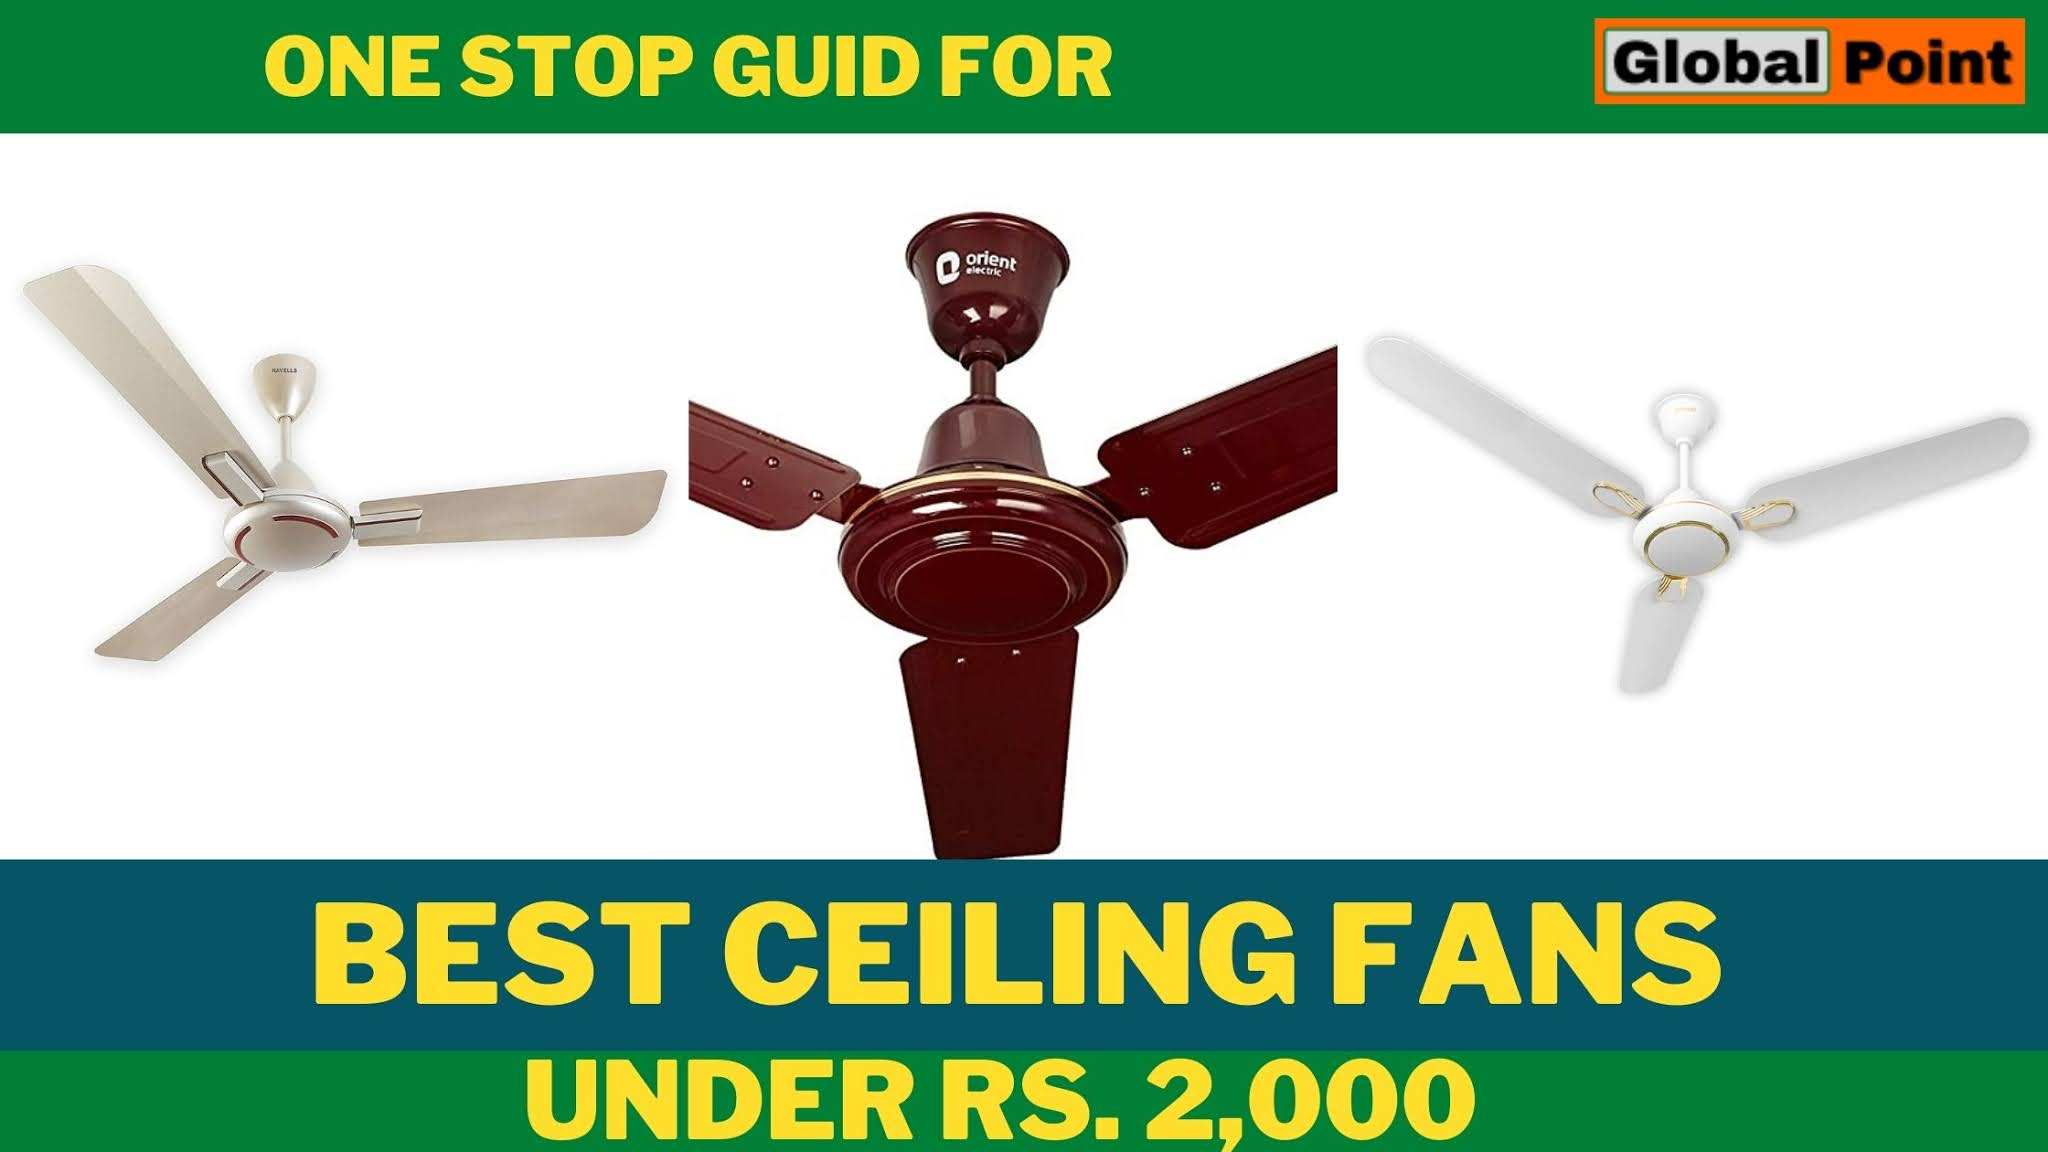 10 Best Ceiling Fans Under Rs 2000 in India 2021